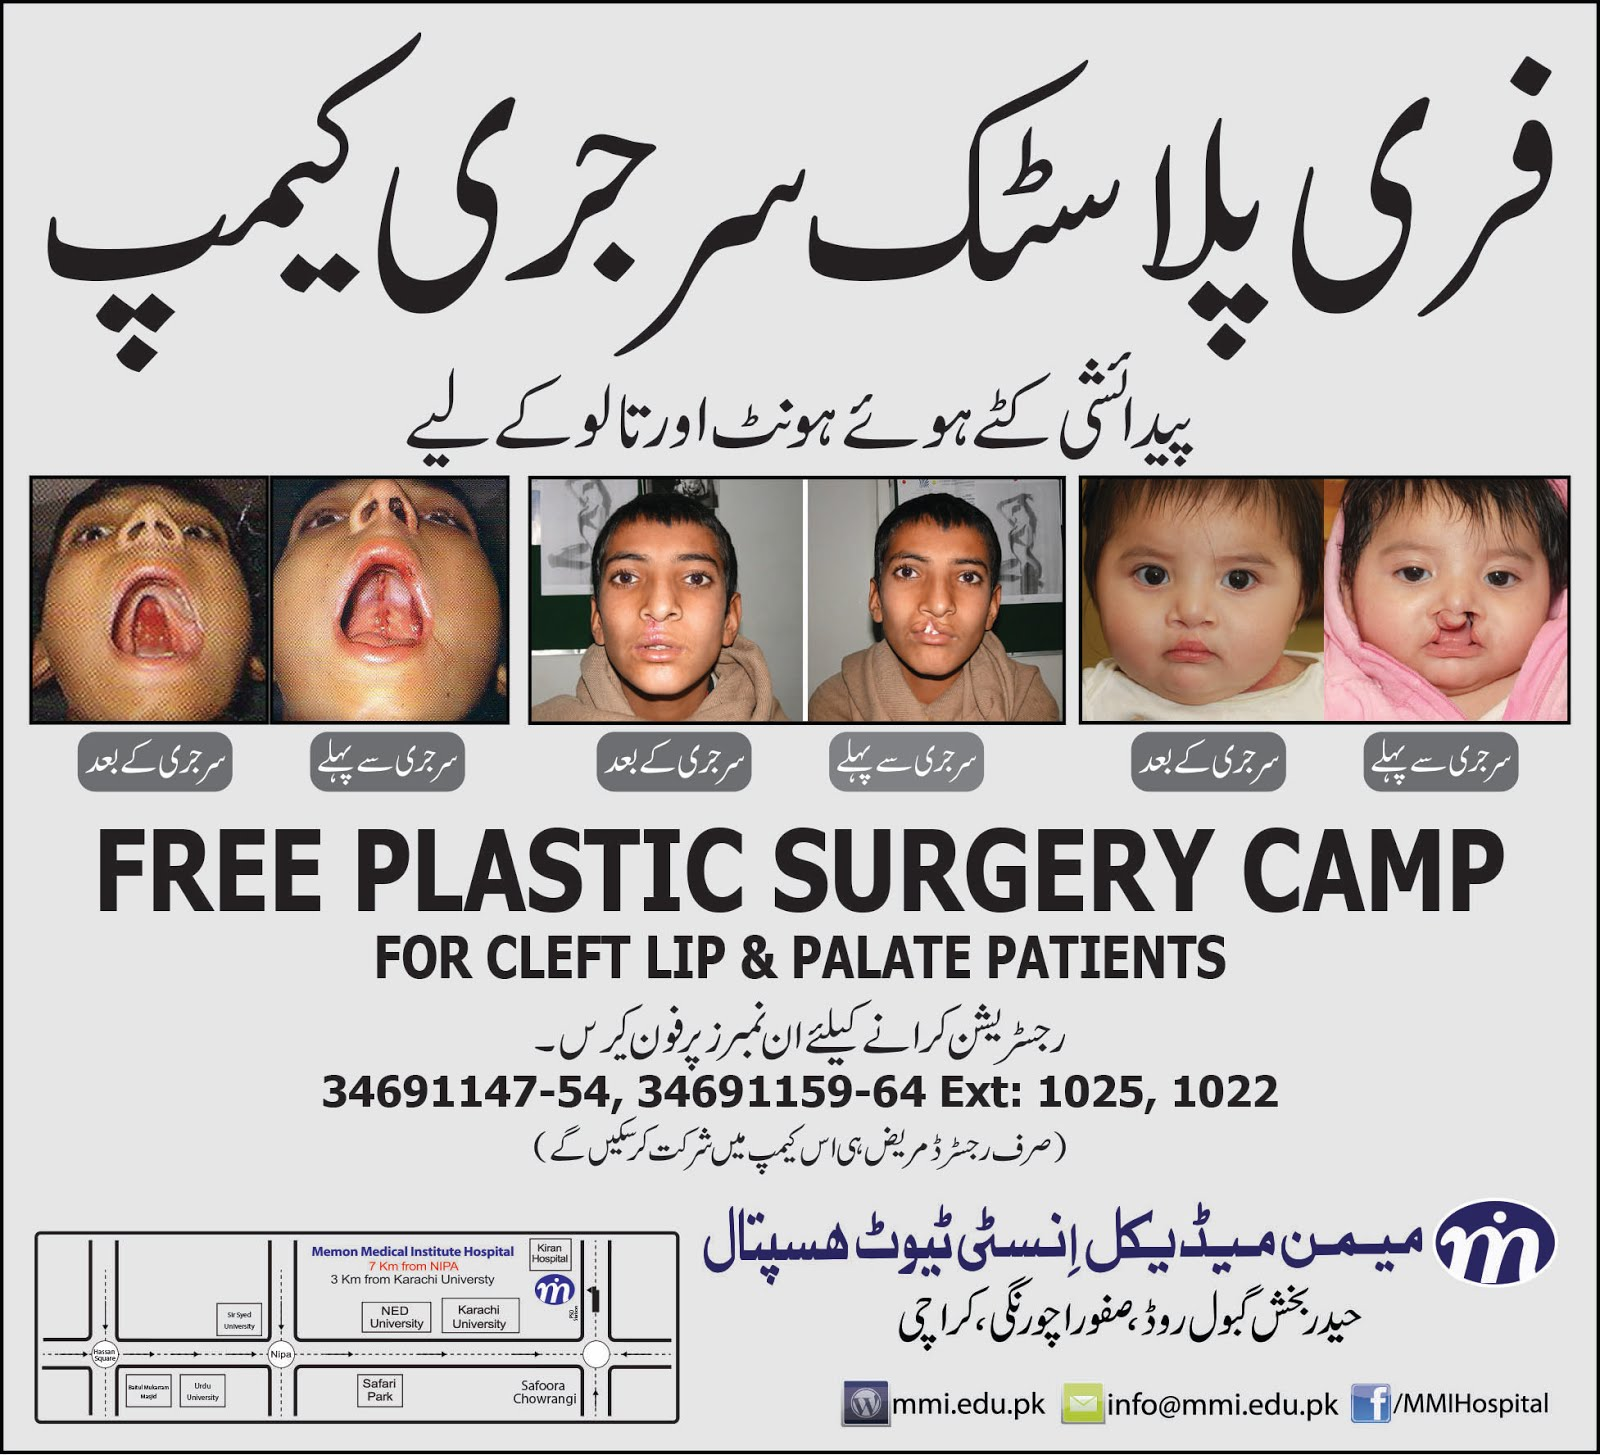 YAISHWARYAJ: {Awareness} Free Plastic Surgery Camp at MMI